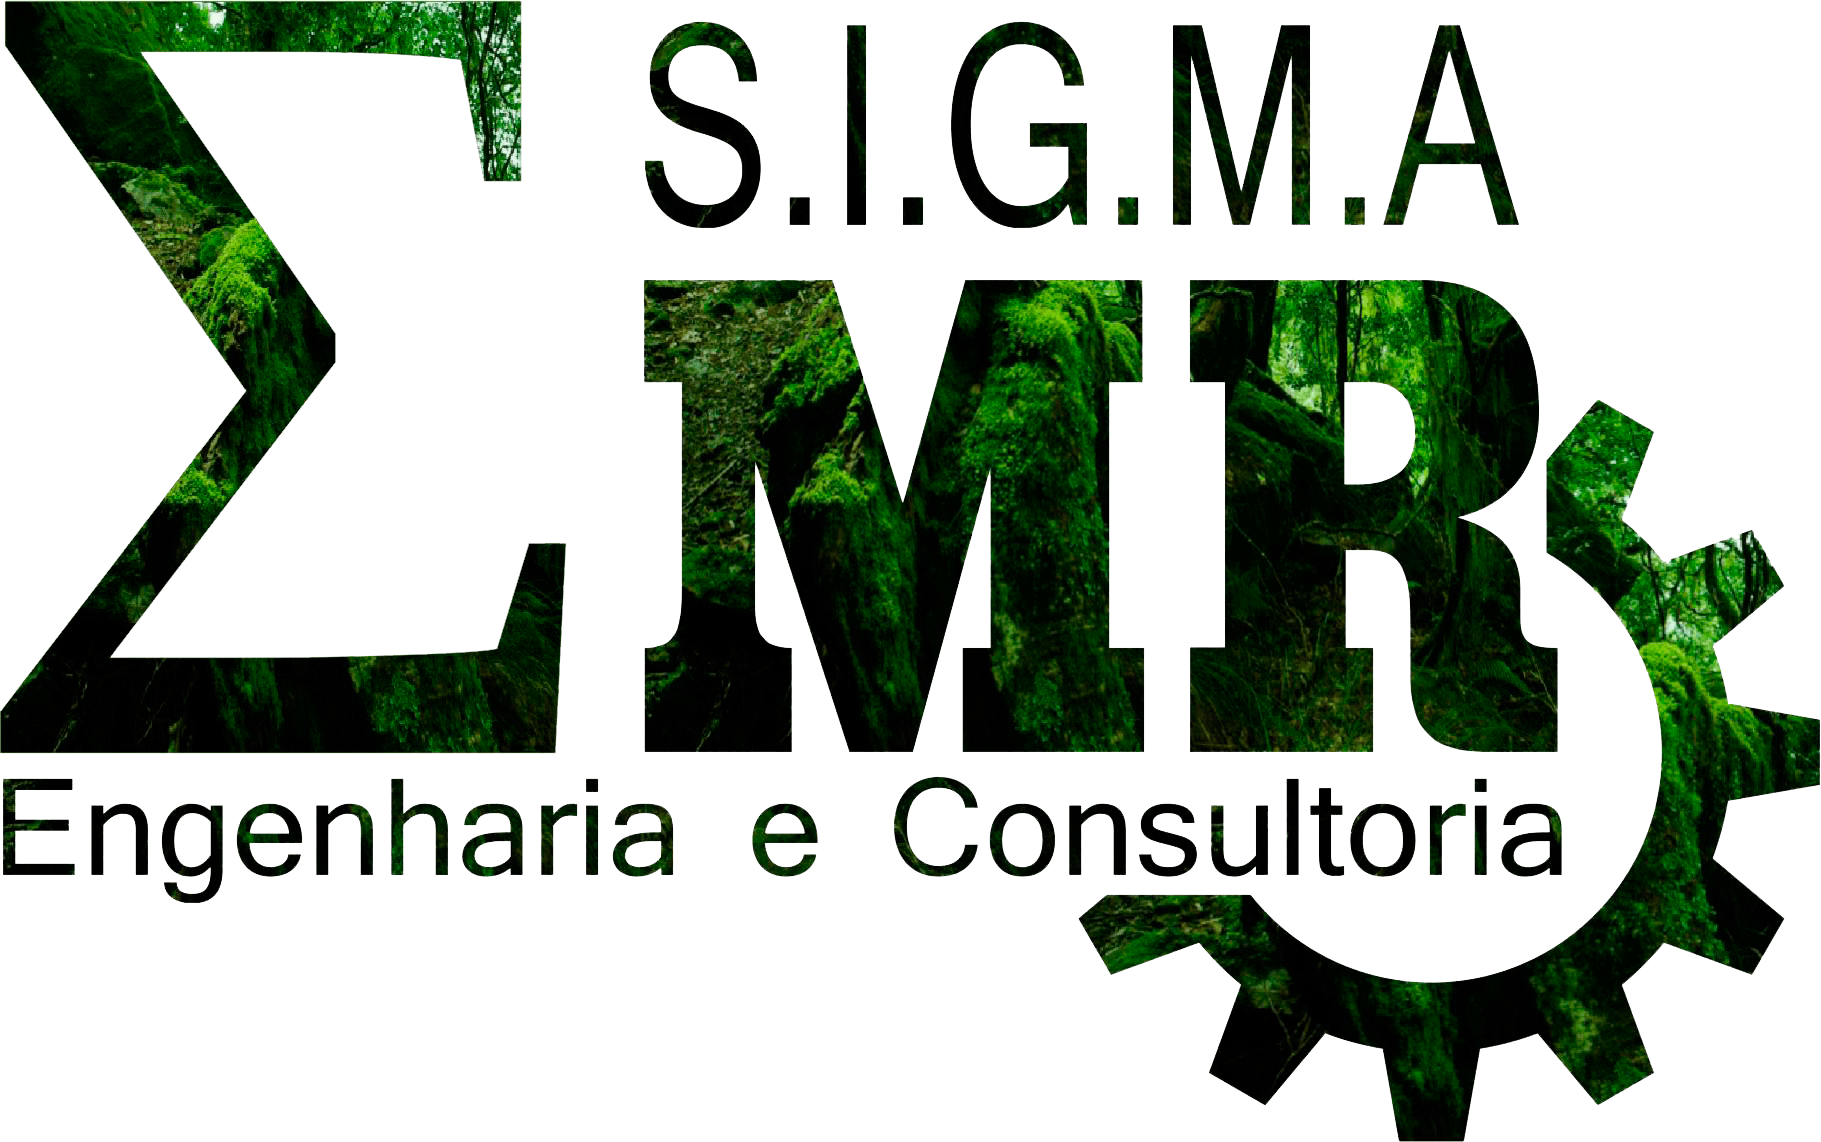 SIGMA MR - Consultoria ambiental